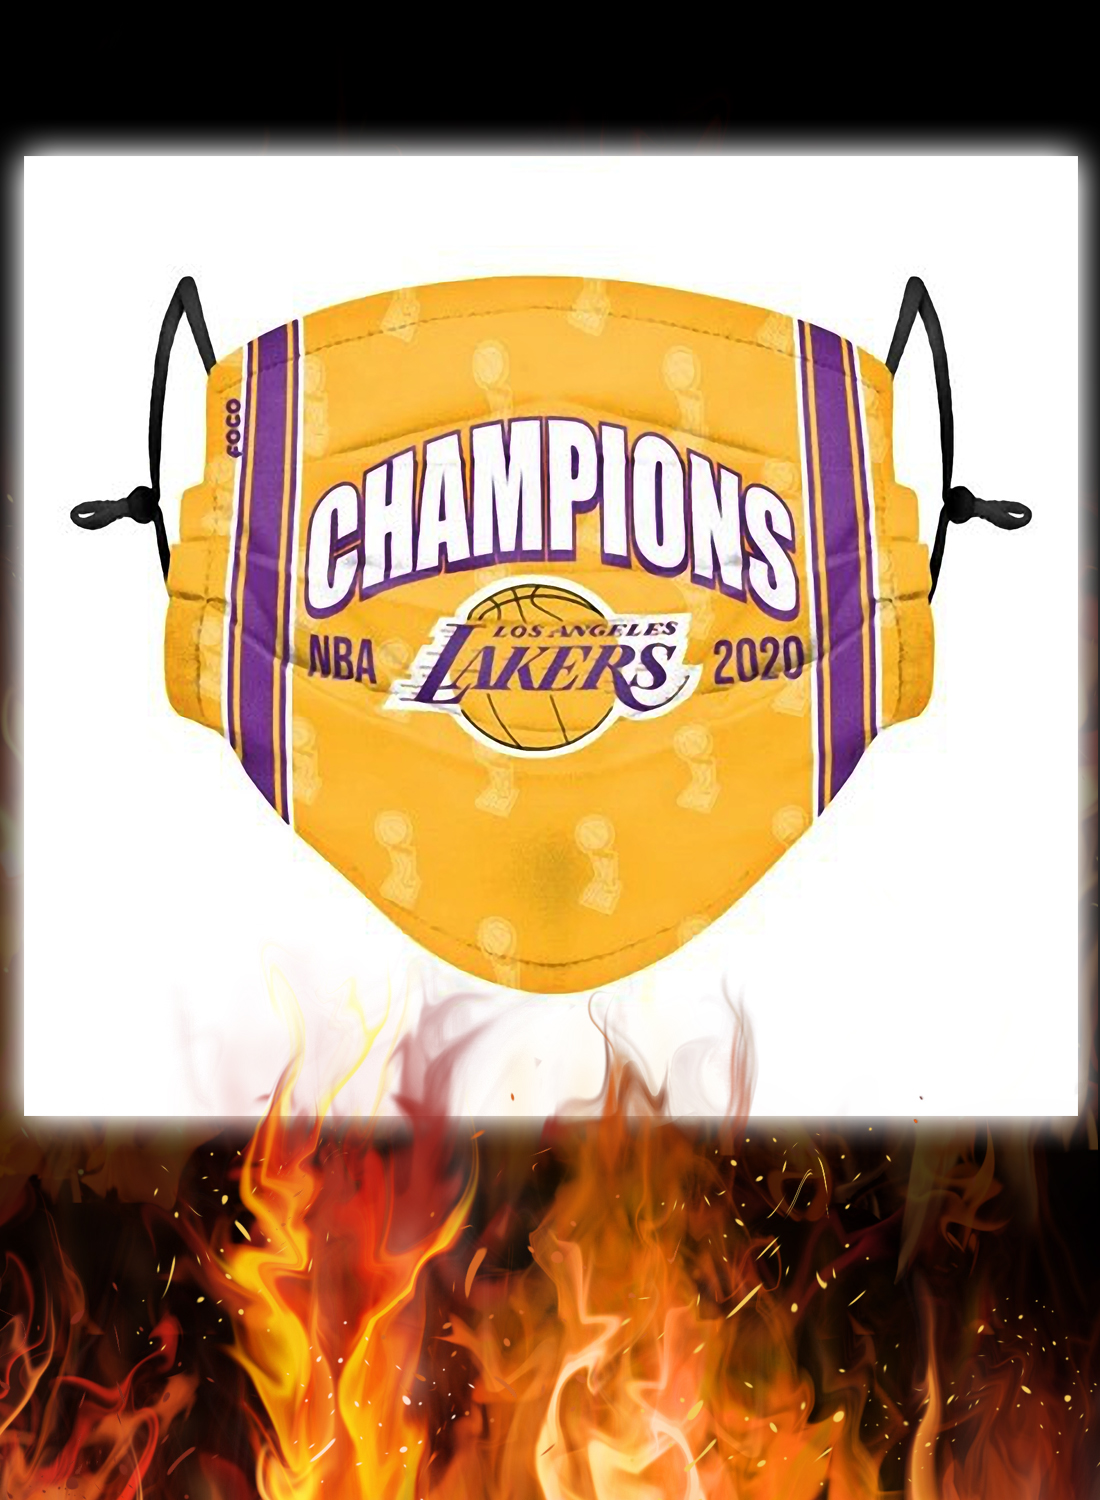 2020 NBA champions los angeles lakers face mask 2